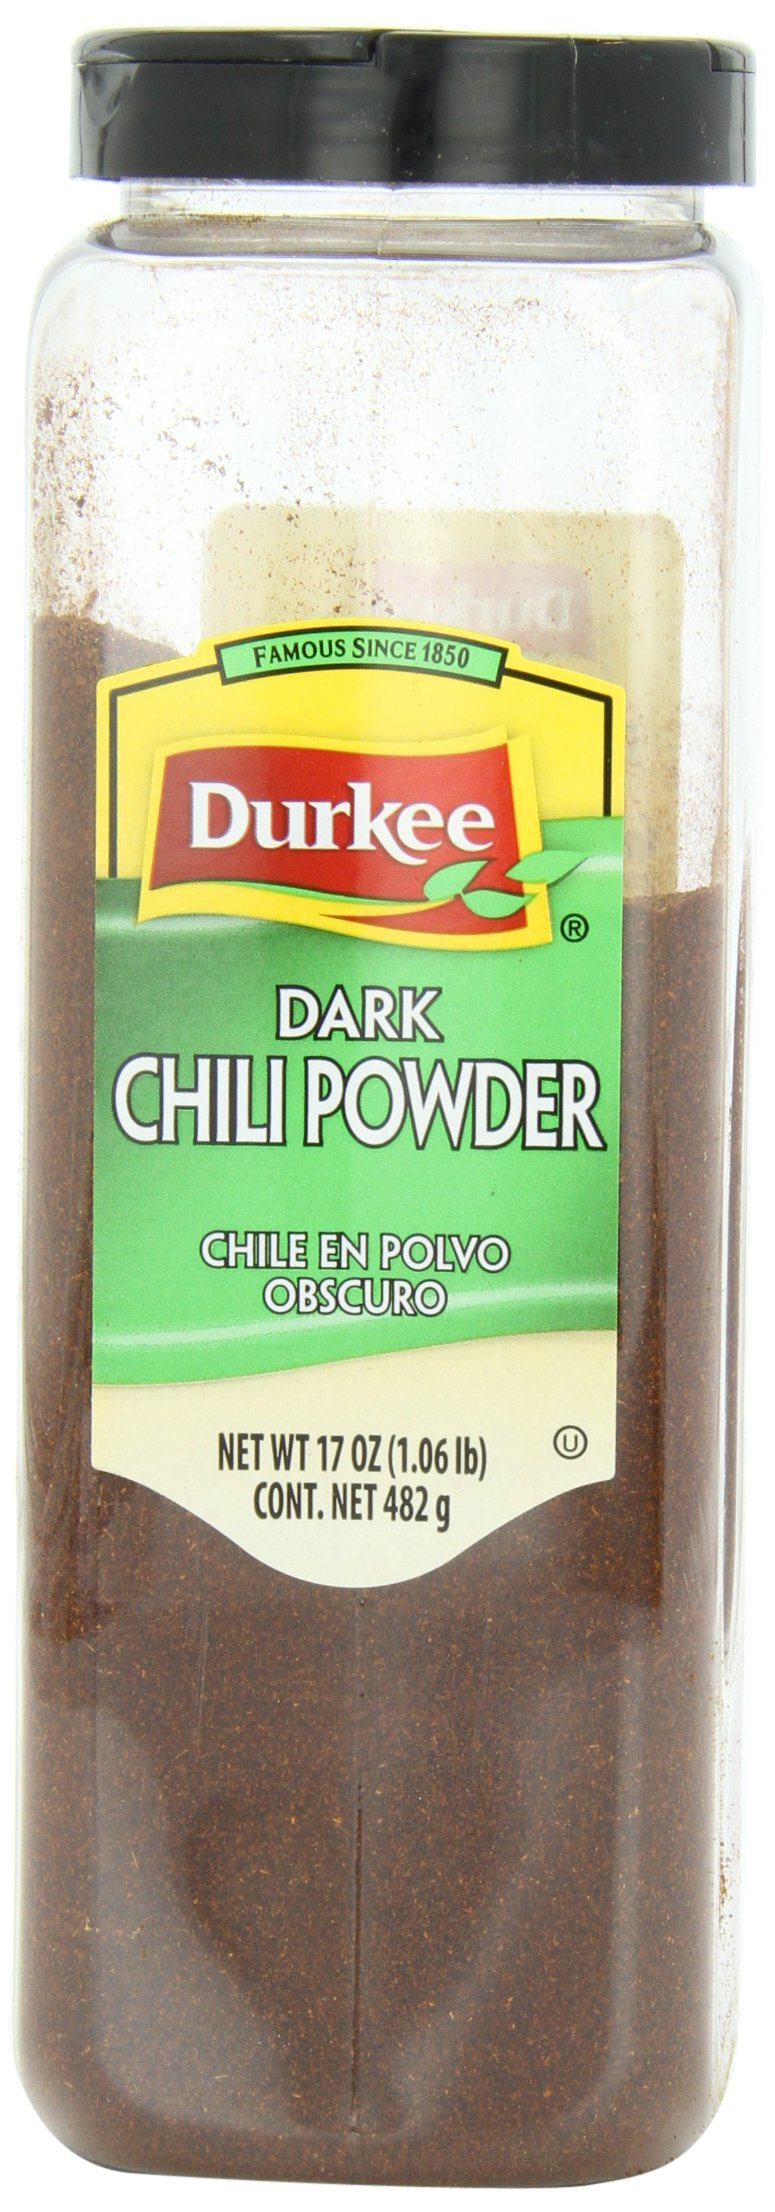 Durkee Chili Powder, Dark, 17-Ounce (Pack of 6)